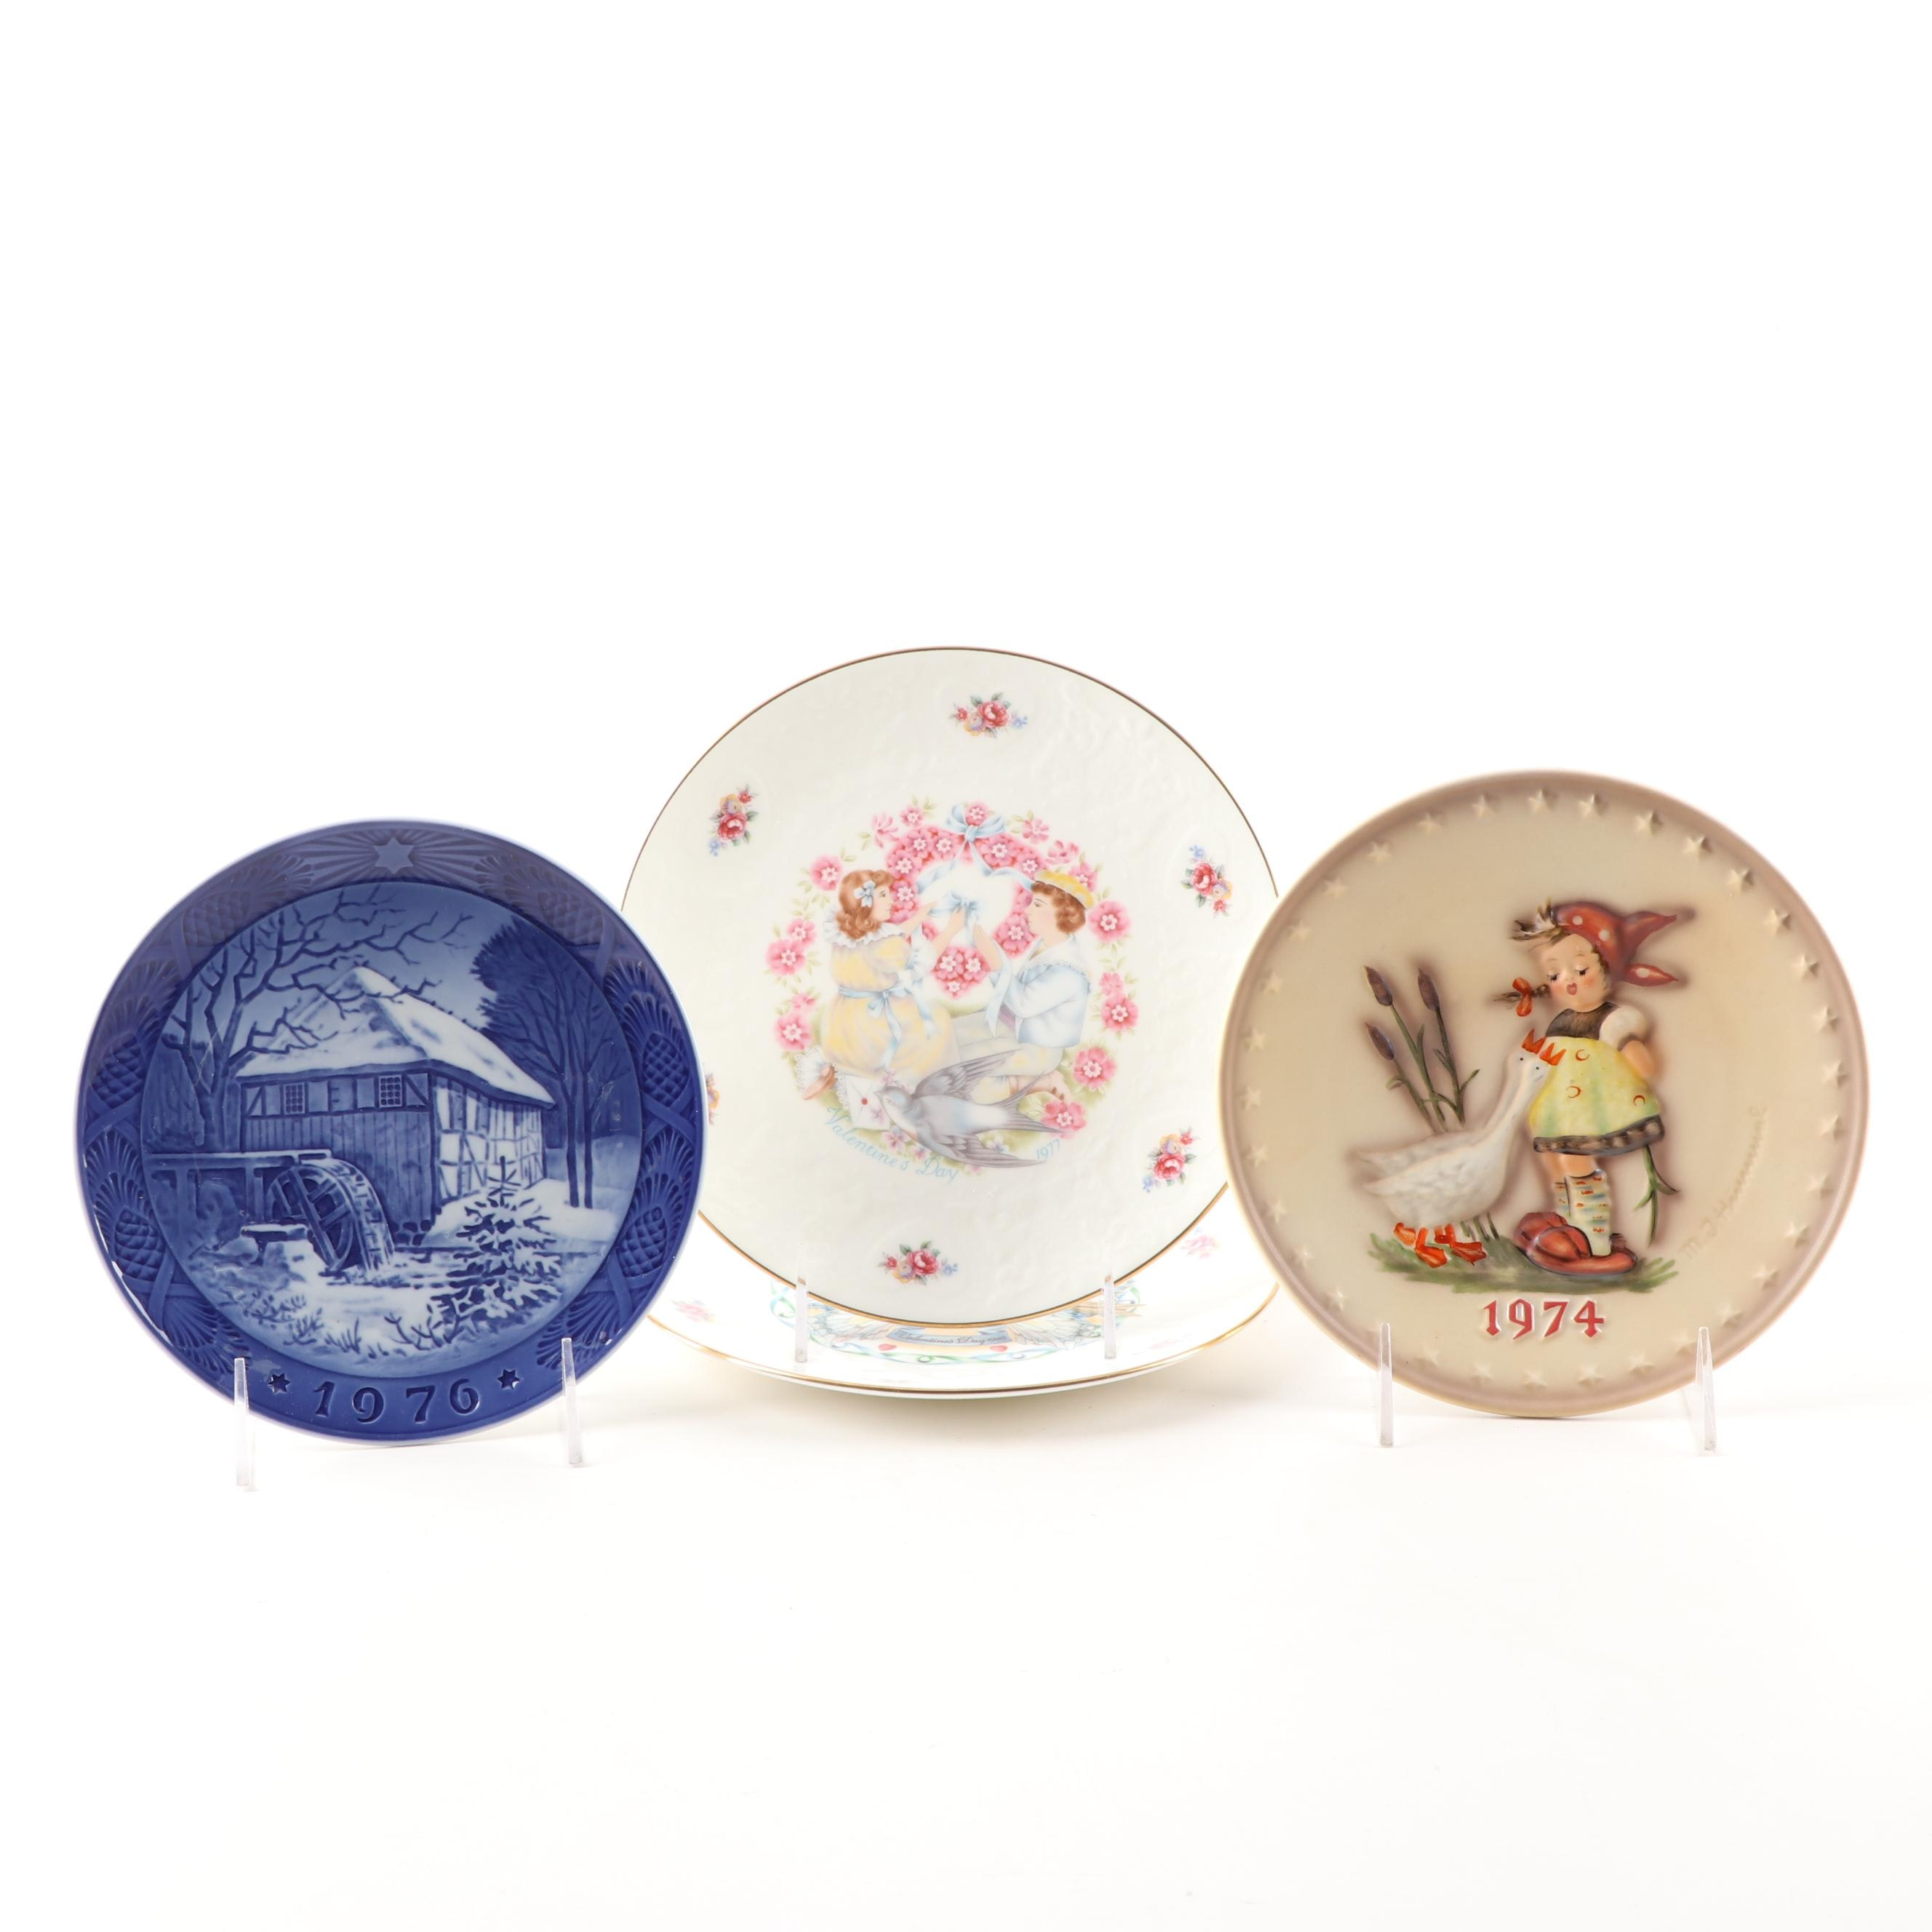 Porcelain Collector Plates by Royal Copenhagen and Royal Doulton